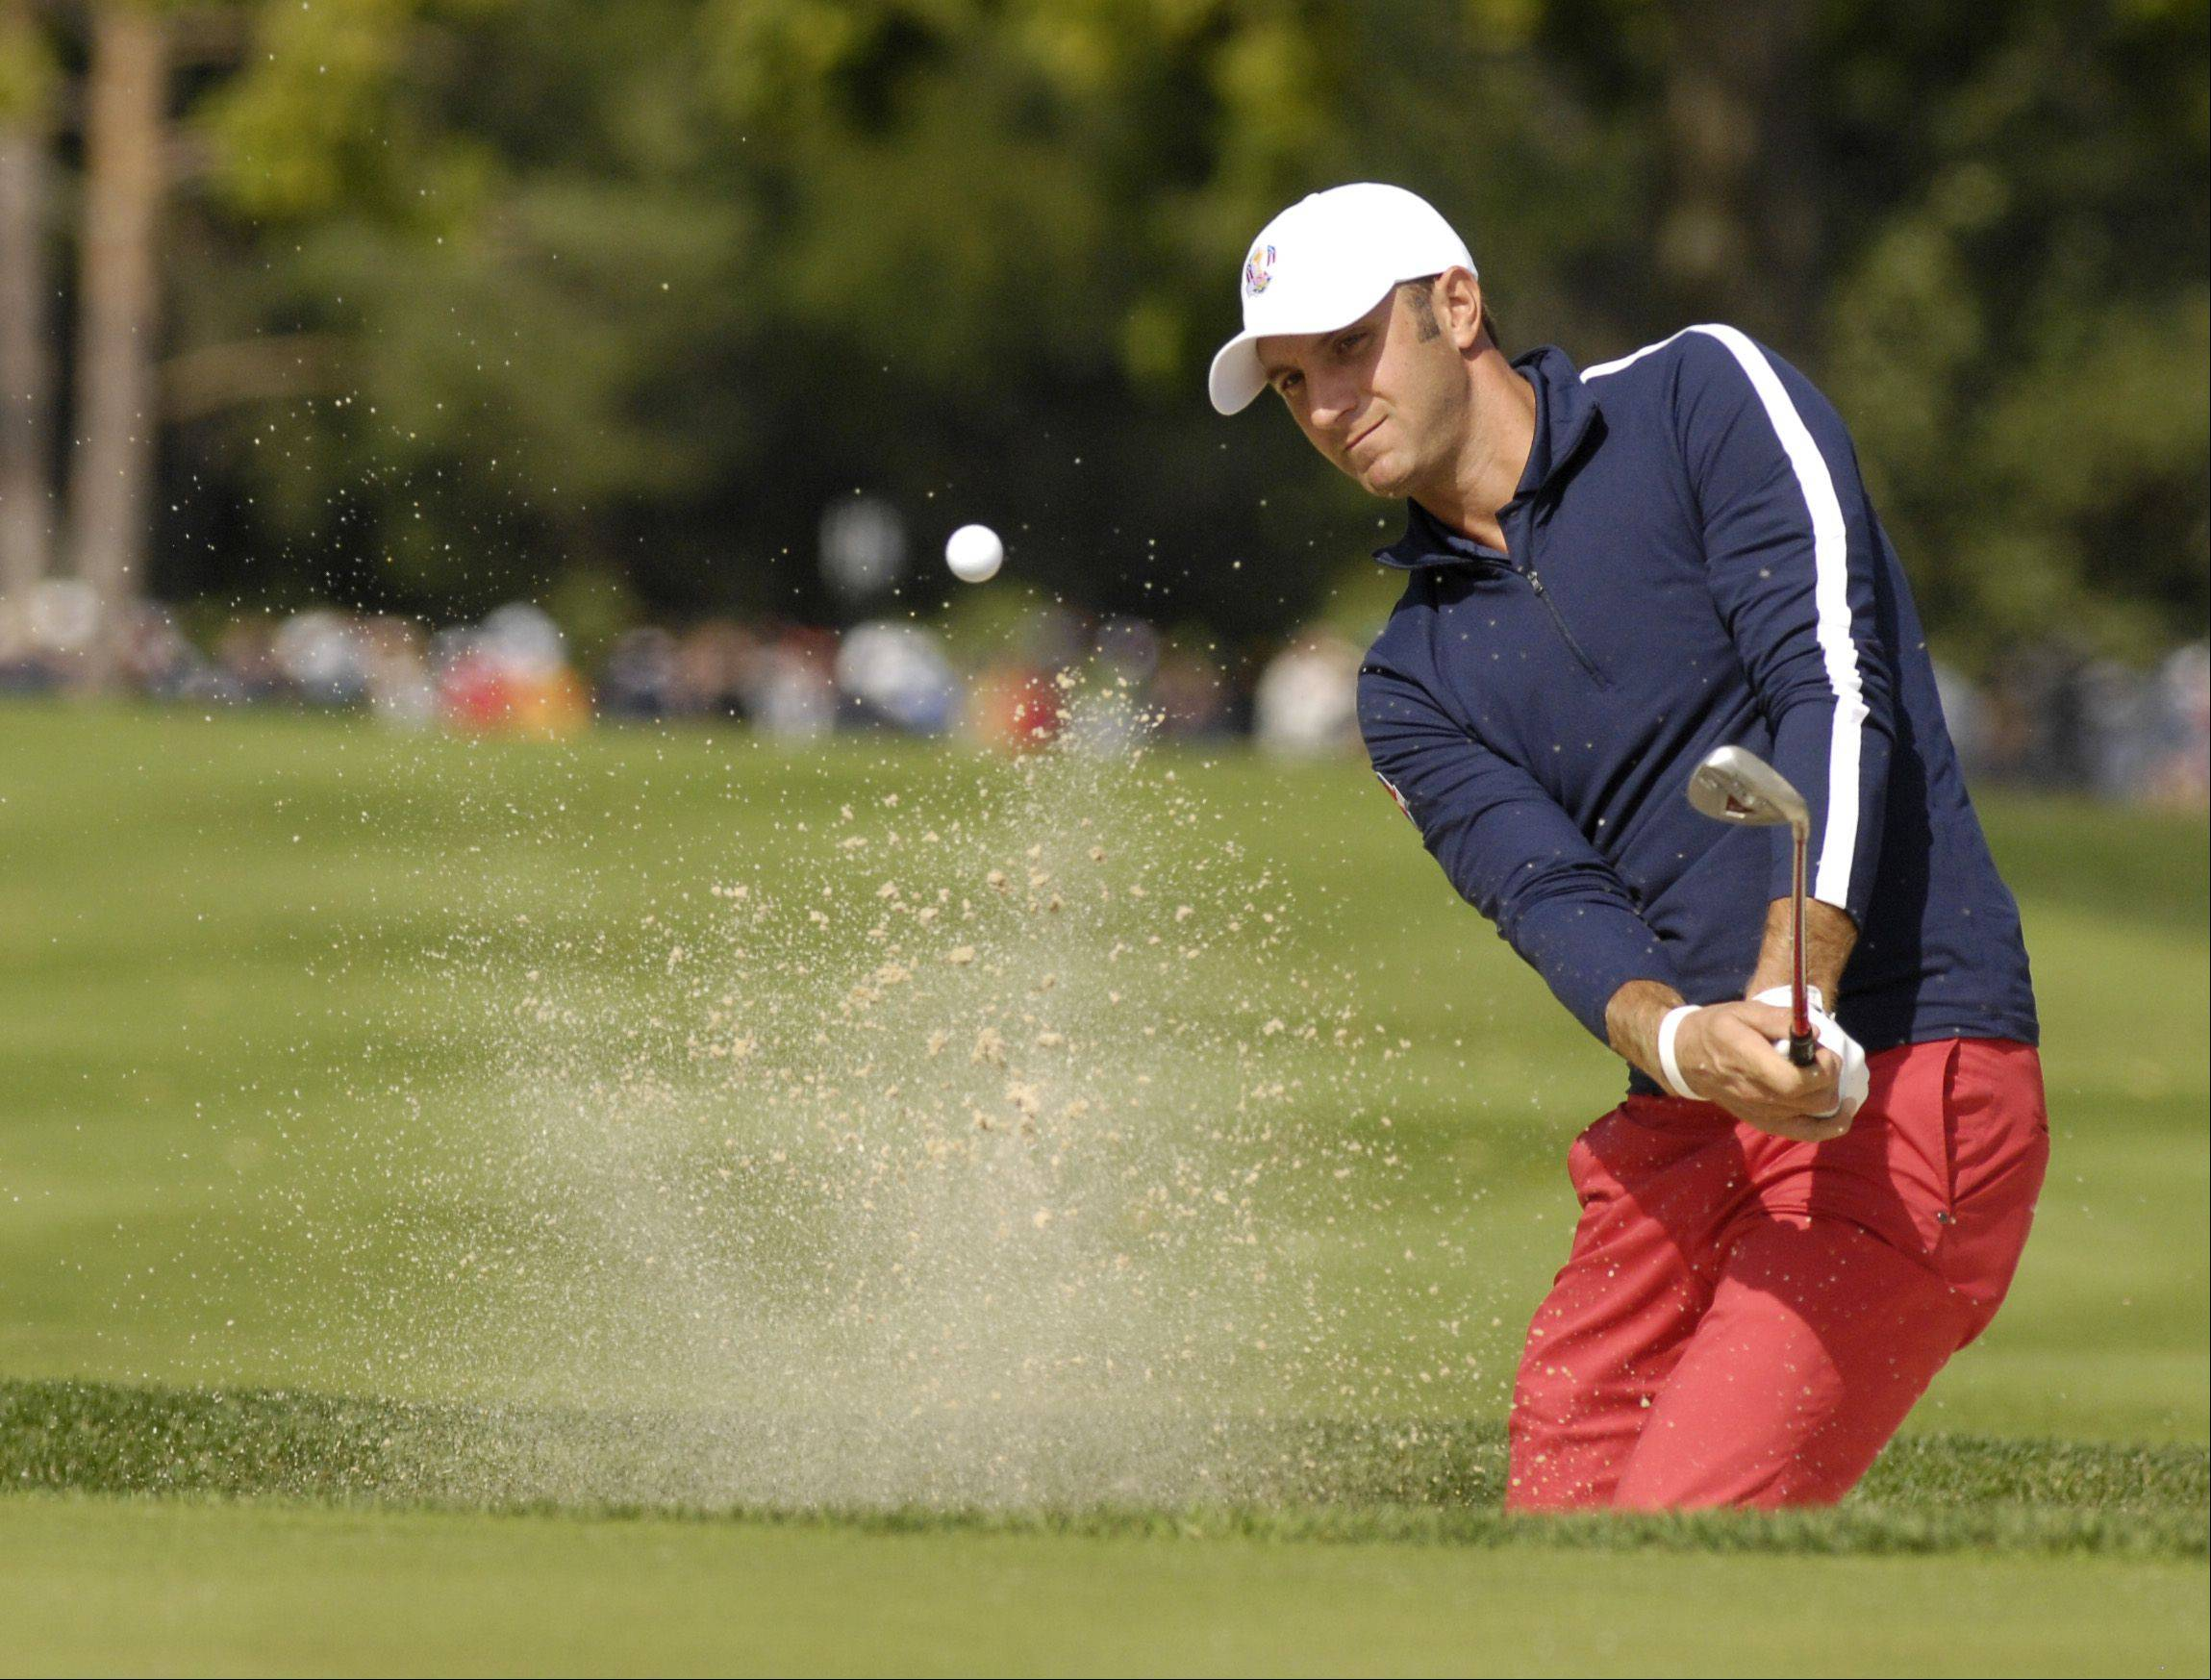 Dustin Johnson of Team USA chips the ball out of the sand.